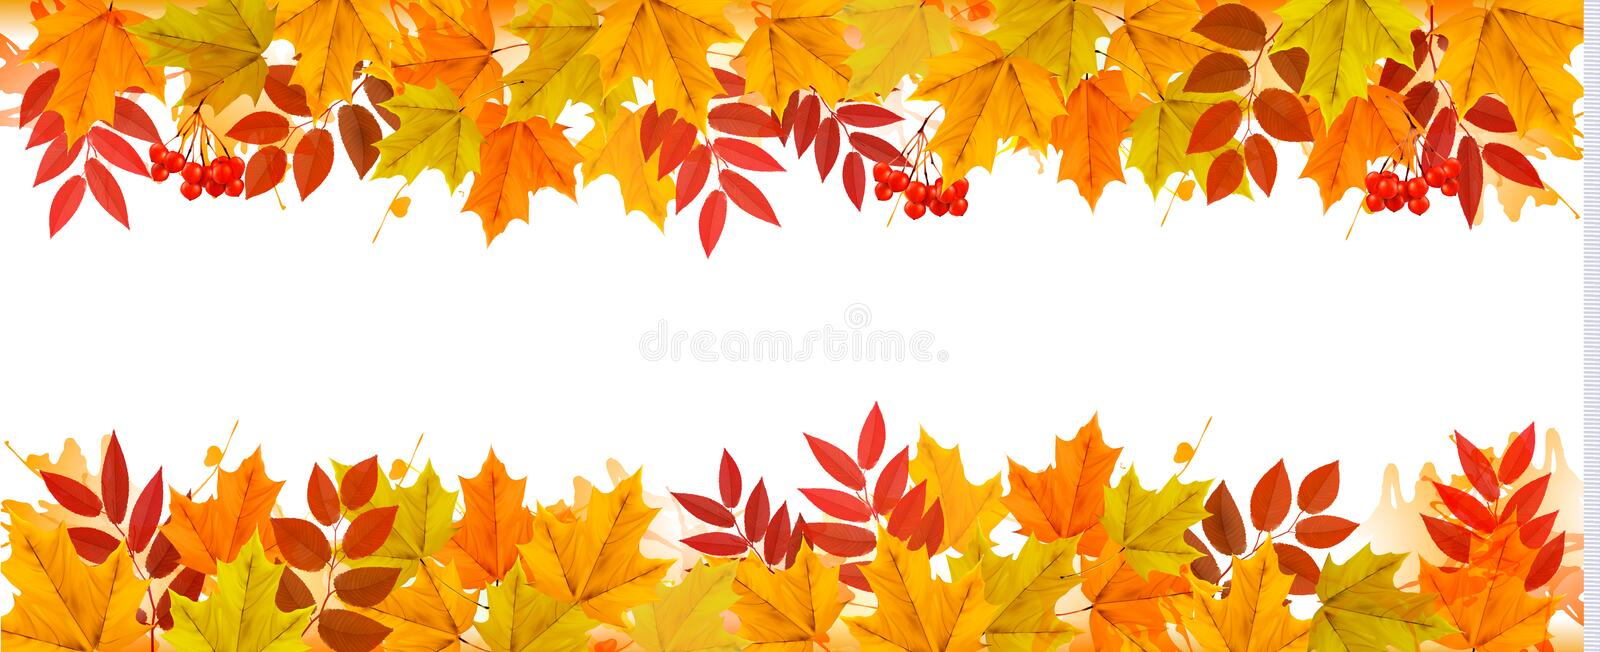 Panorama Fall Autumn Colorful Leaves Background. vector illustration